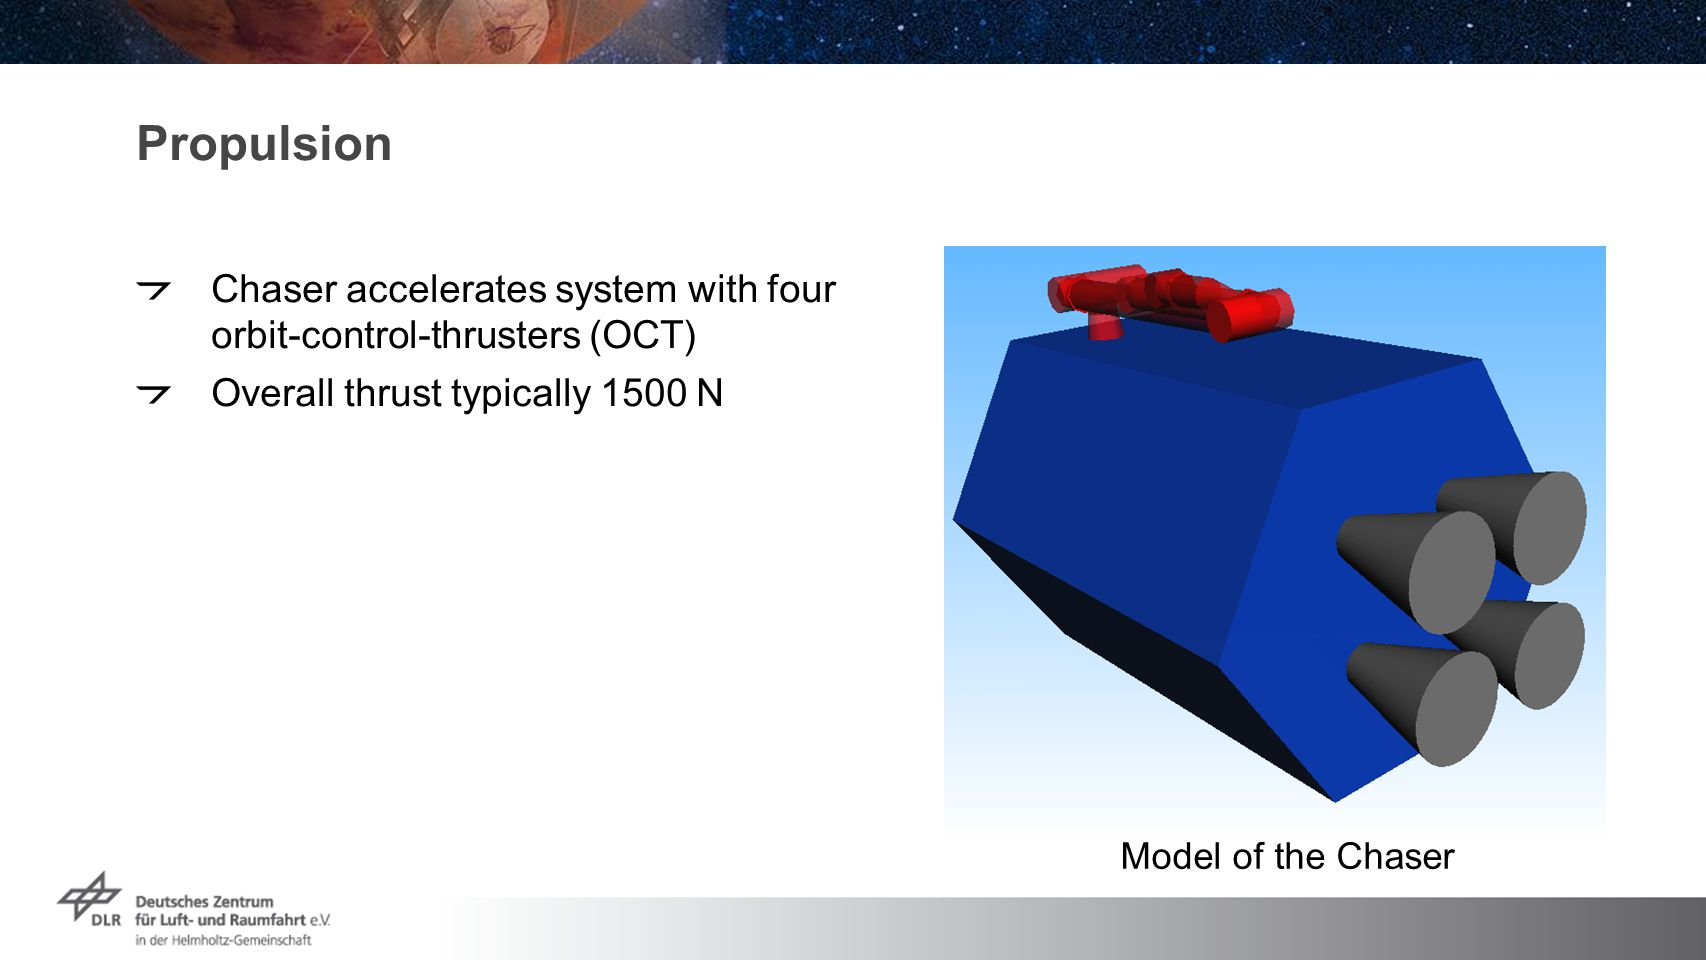 Propulsion Chaser accelerates system with four orbit-control-thrusters (OCT) Overall thrust typically 1500 N Model of the Chaser